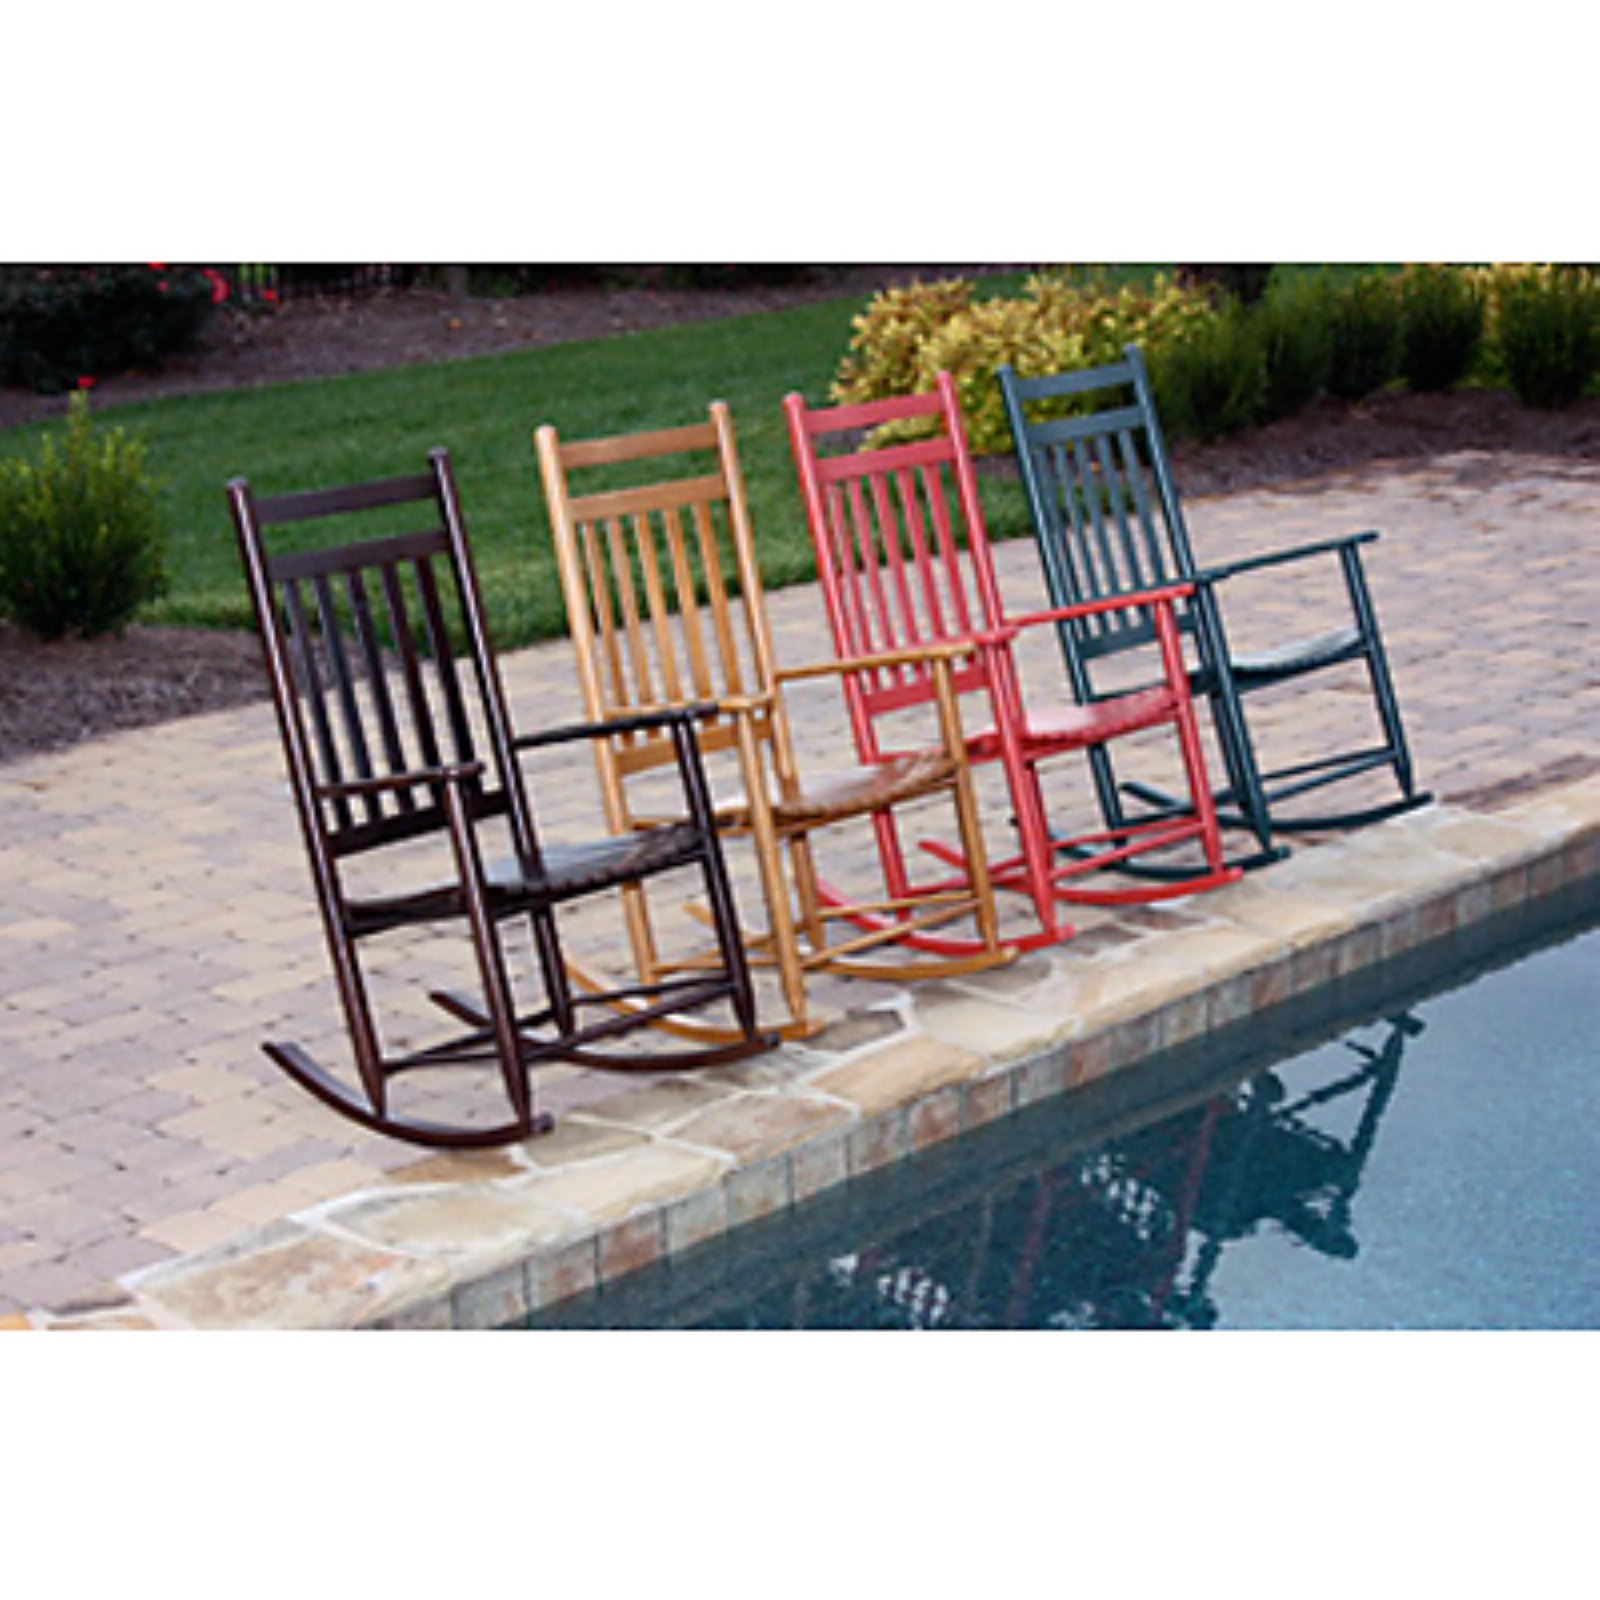 Dixie Seating Indoor Outdoor Slat Rocking Chair Fashion Colors by Dixie Seating Company